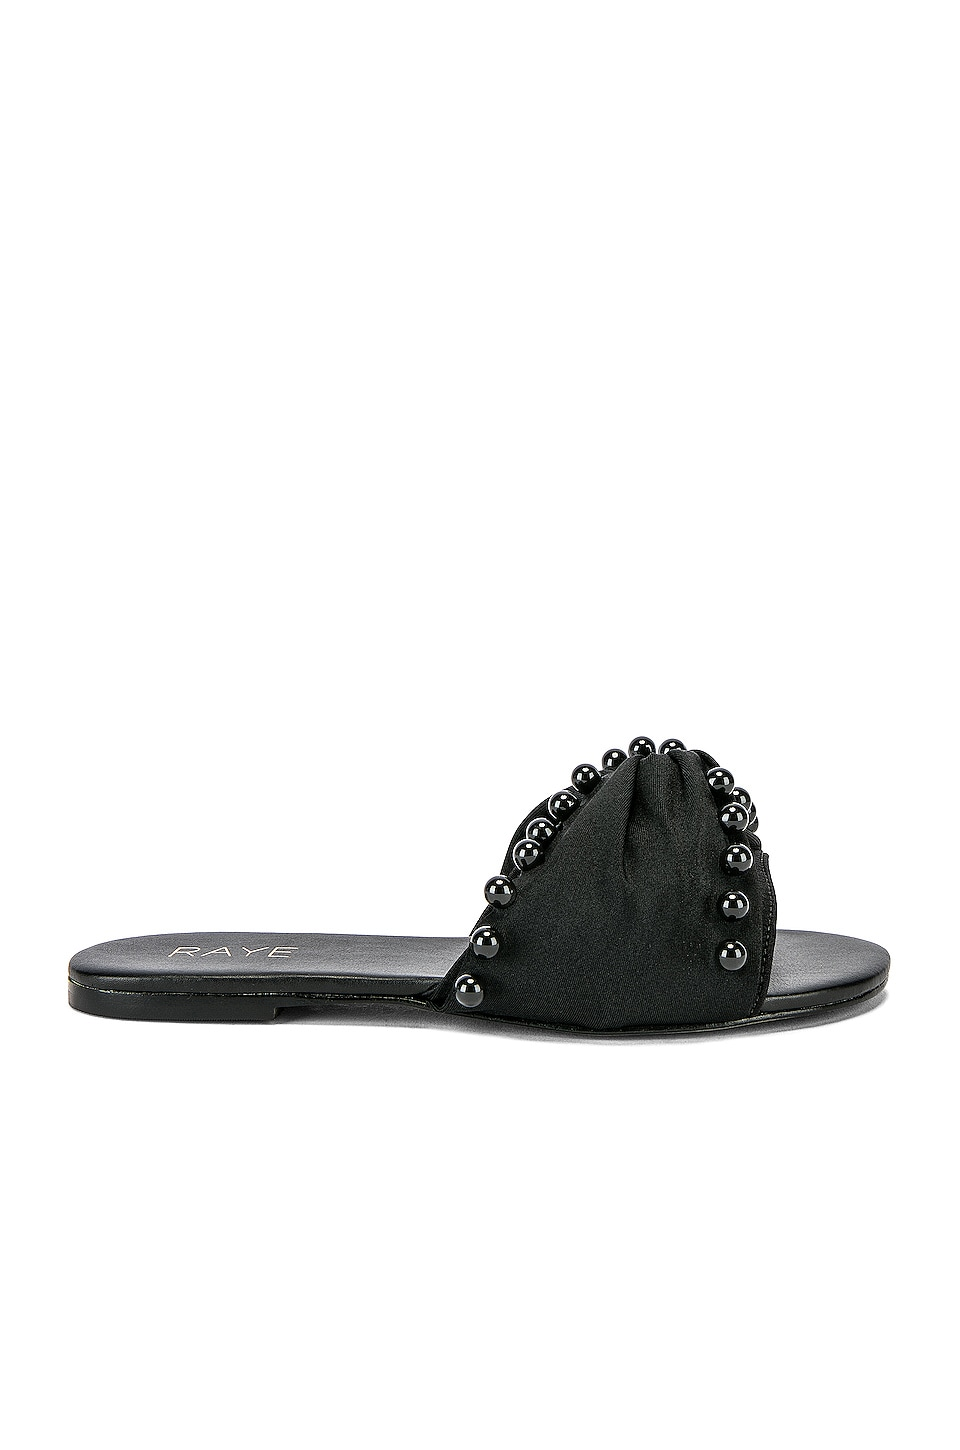 RAYE Mateo Sandal in Black